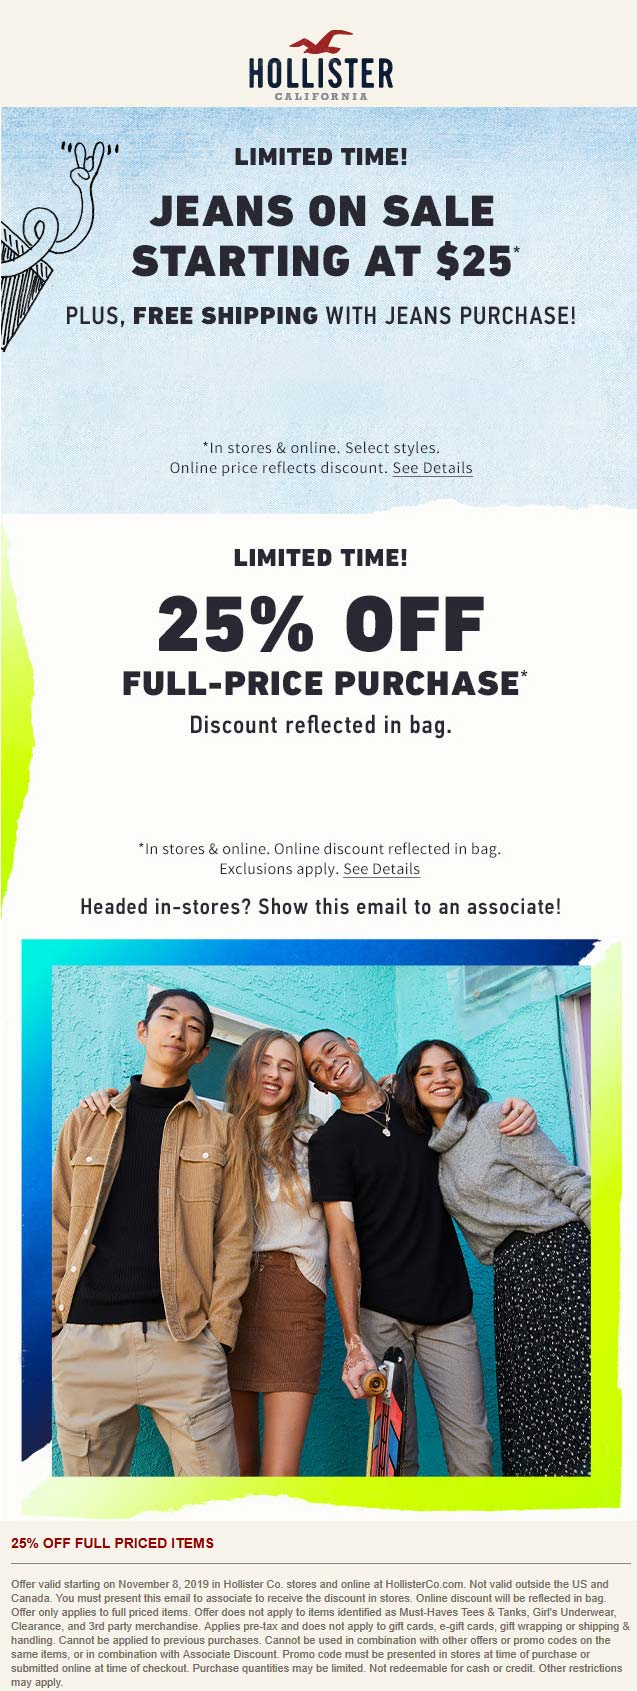 Hollister Coupon November 2019 25% off at Hollister, ditto online